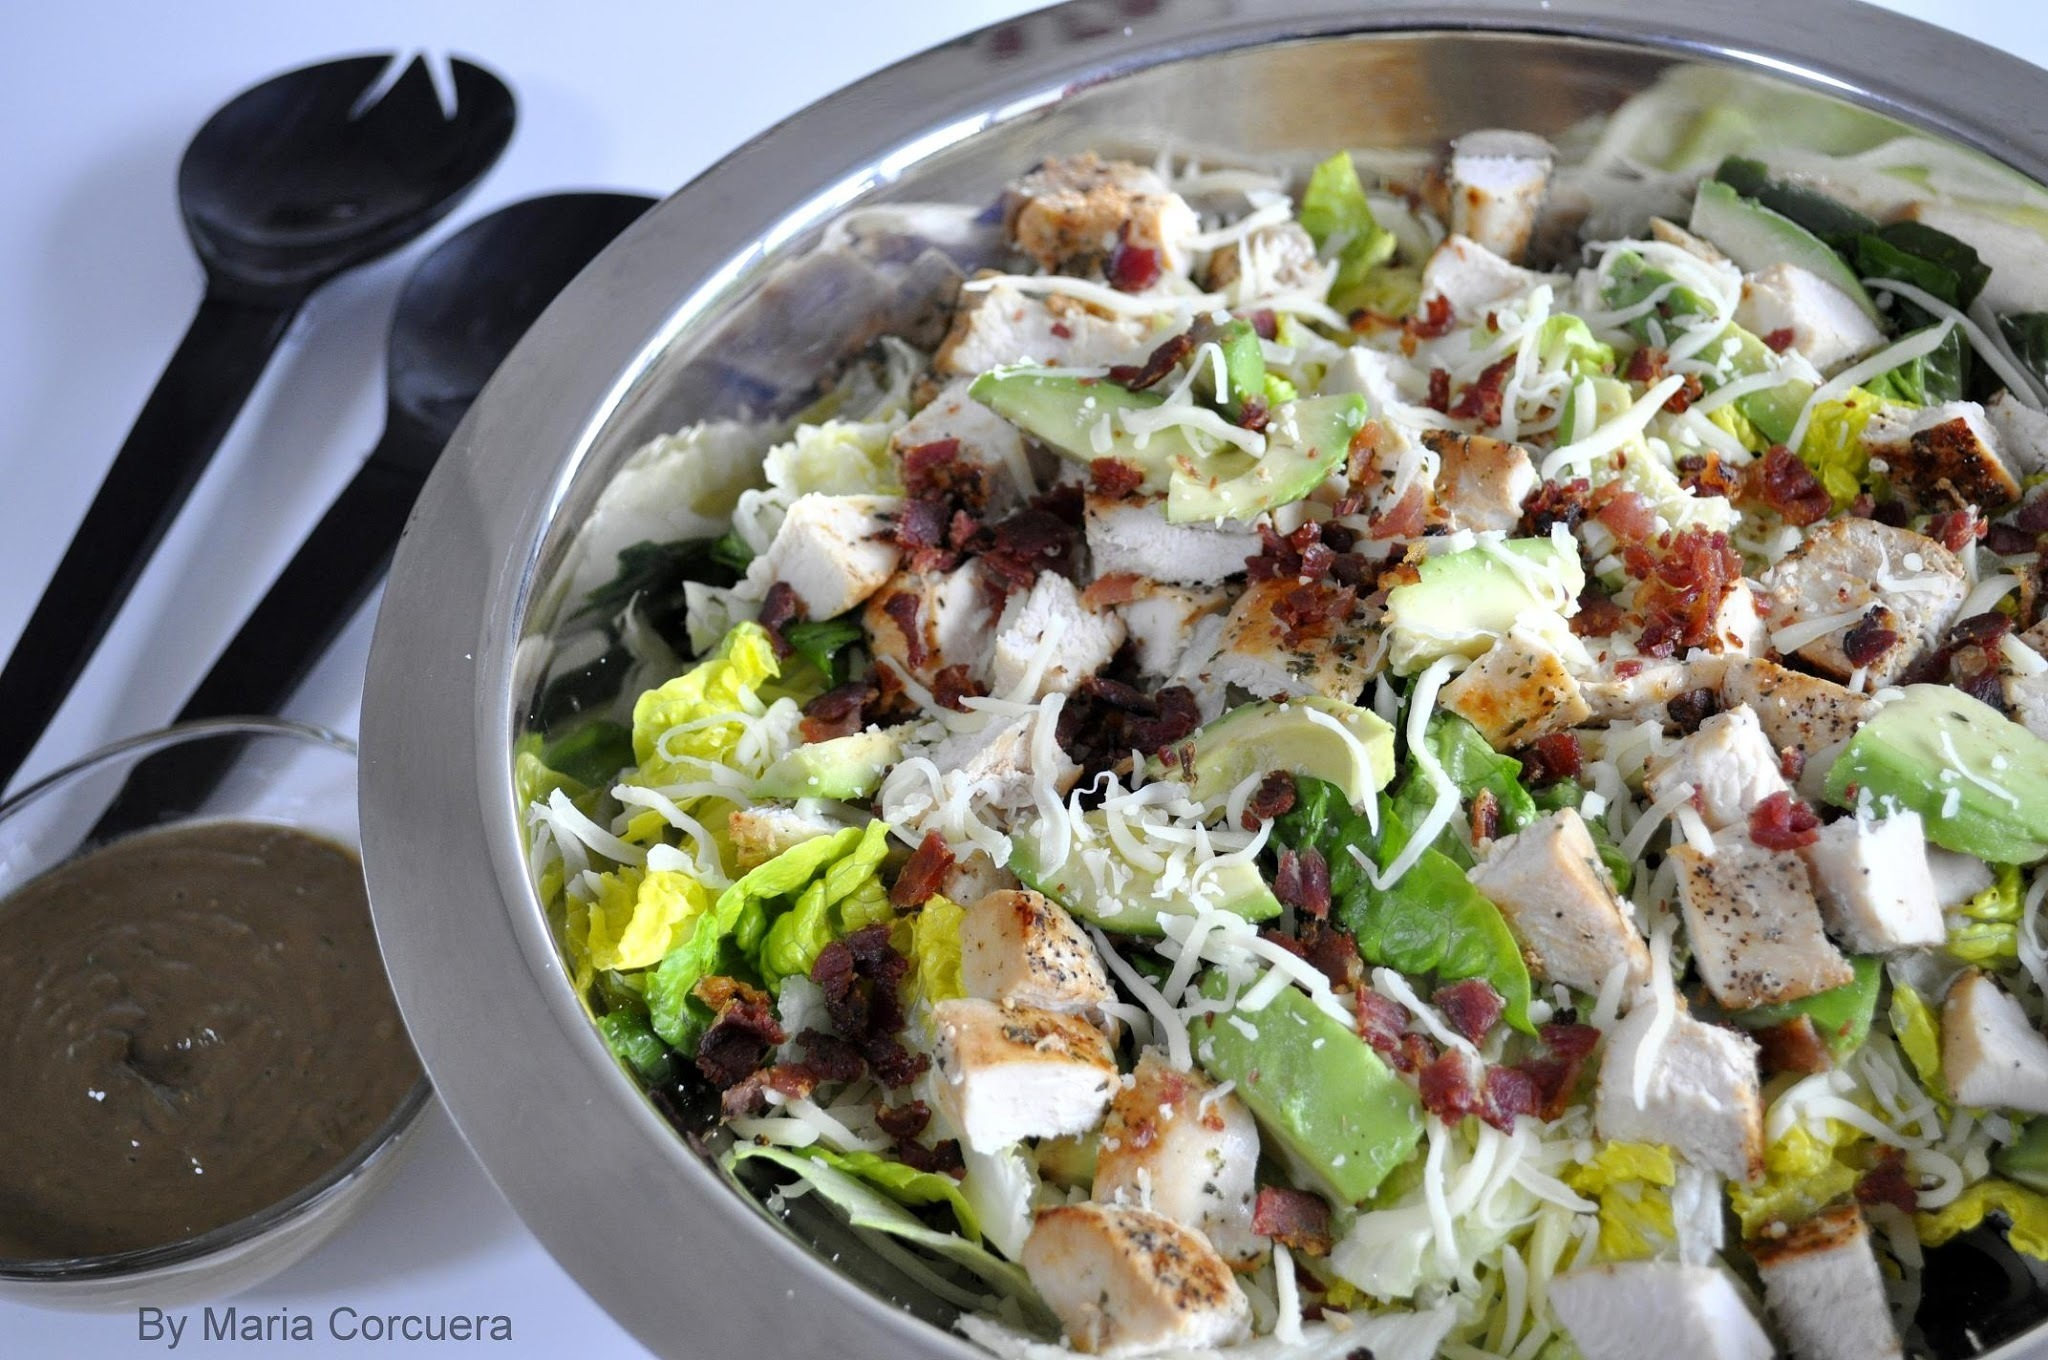 Chicken and Bacon Salad with Coriander & Avocado Vinaigrette